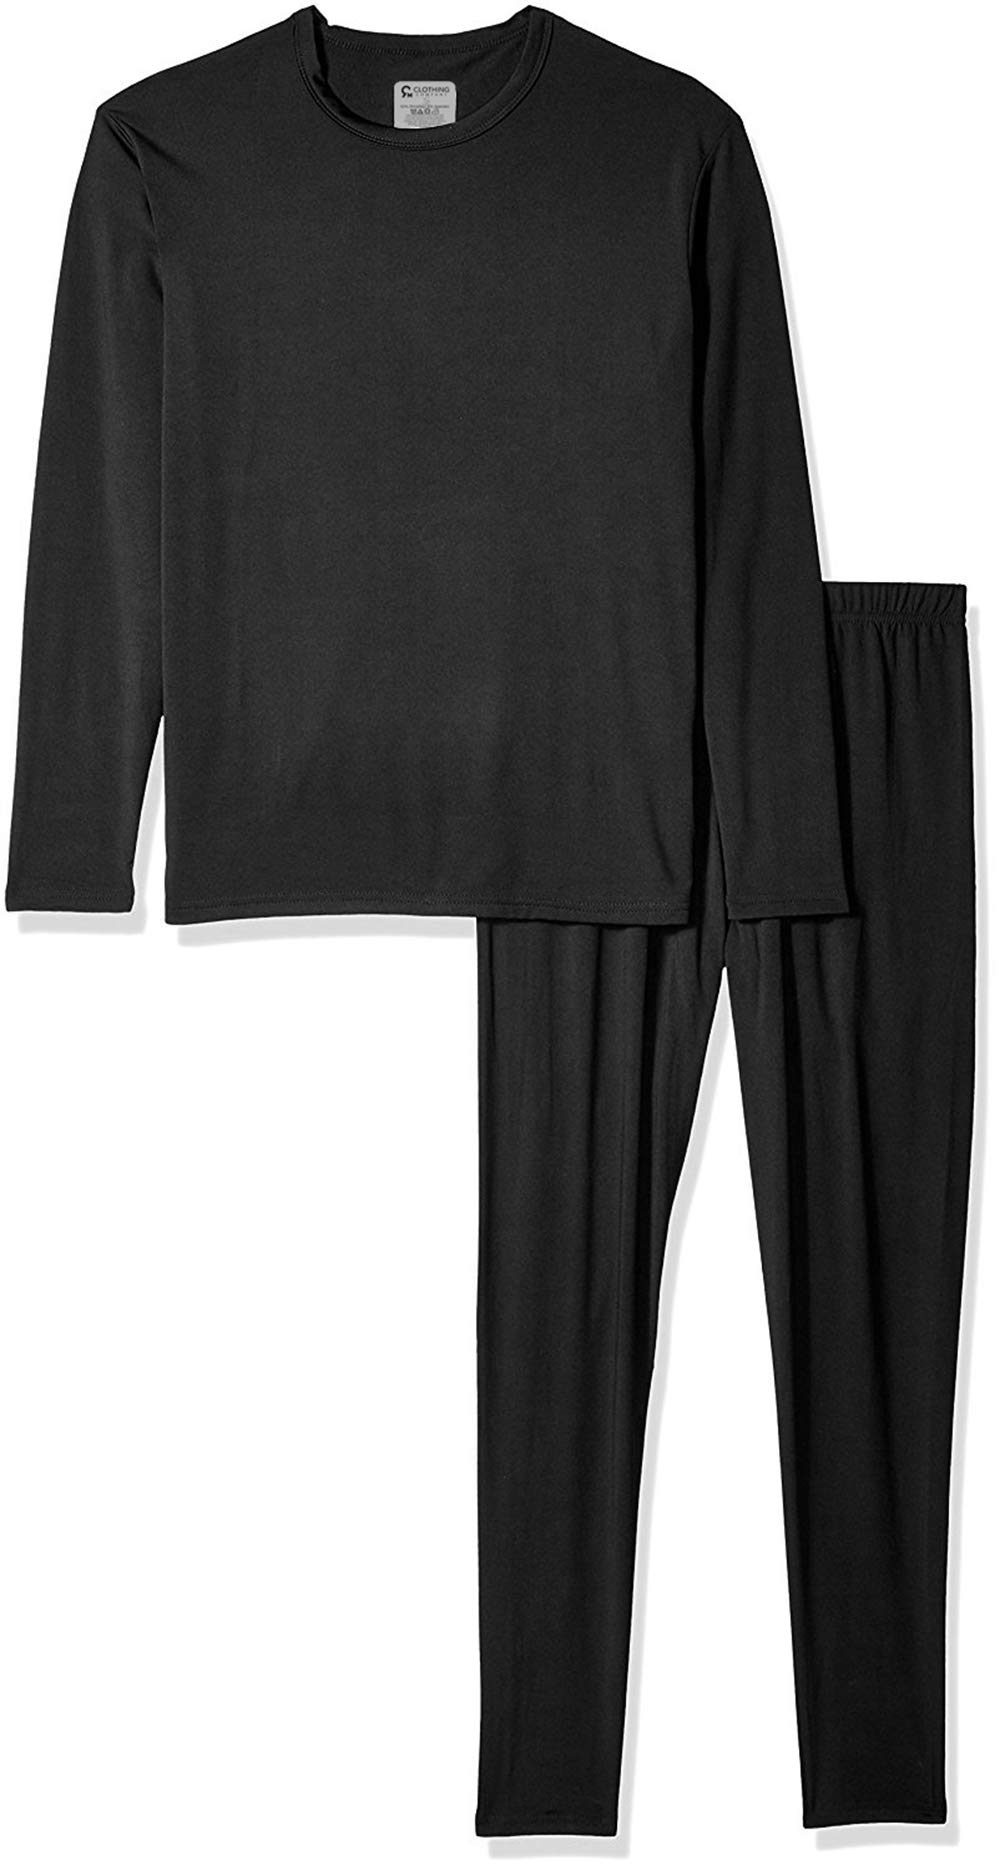 9M Men's Ultra Soft Thermal Underwear Base Layer Long Johns Set with Fleece Lined, Black, Large by 9M Clothing Company